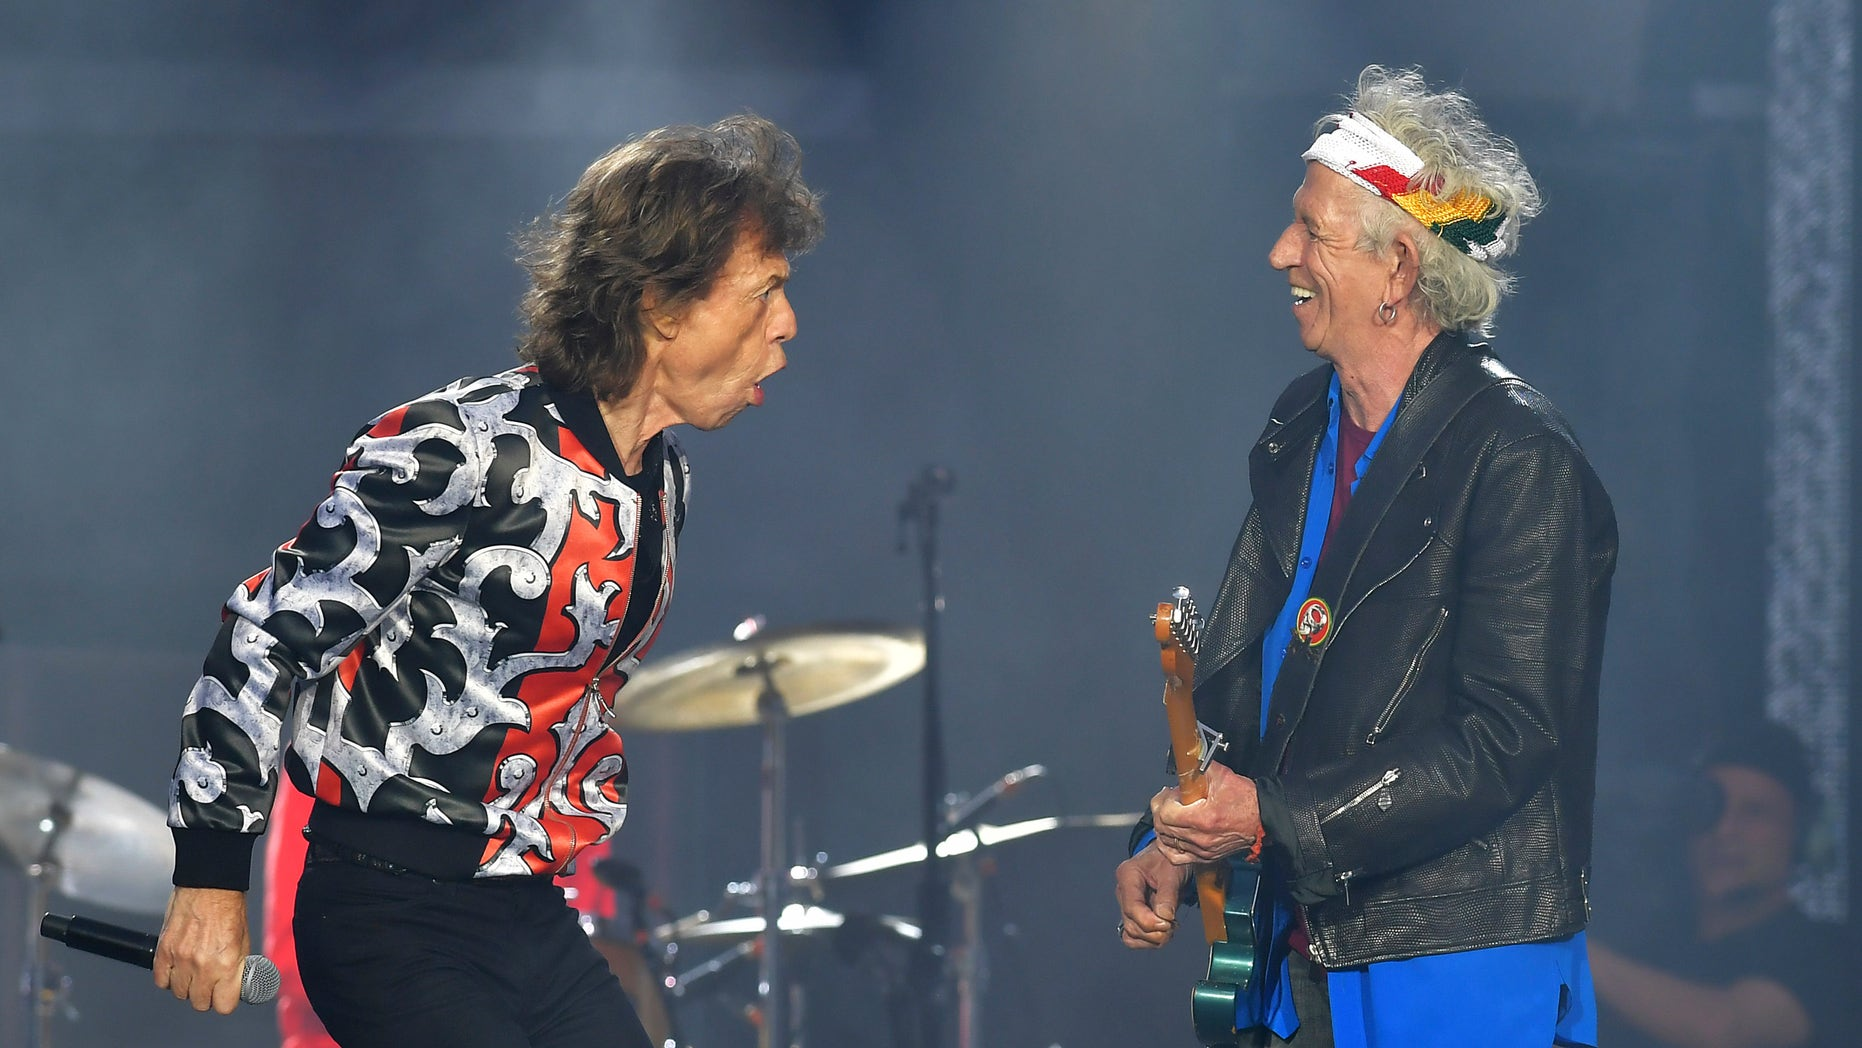 ARCHIVE: in this archive photo of May 25, 2018, Mick Jagger, left, and Keith Richards, of The Rolling Stones, perform during their No Filter tour in London. The Rolling Stones will be rolling across the United States next year. The band says they are adding a stage of 13 shows to their tour in the spring of 2019, which will begin in Miami on April 20.